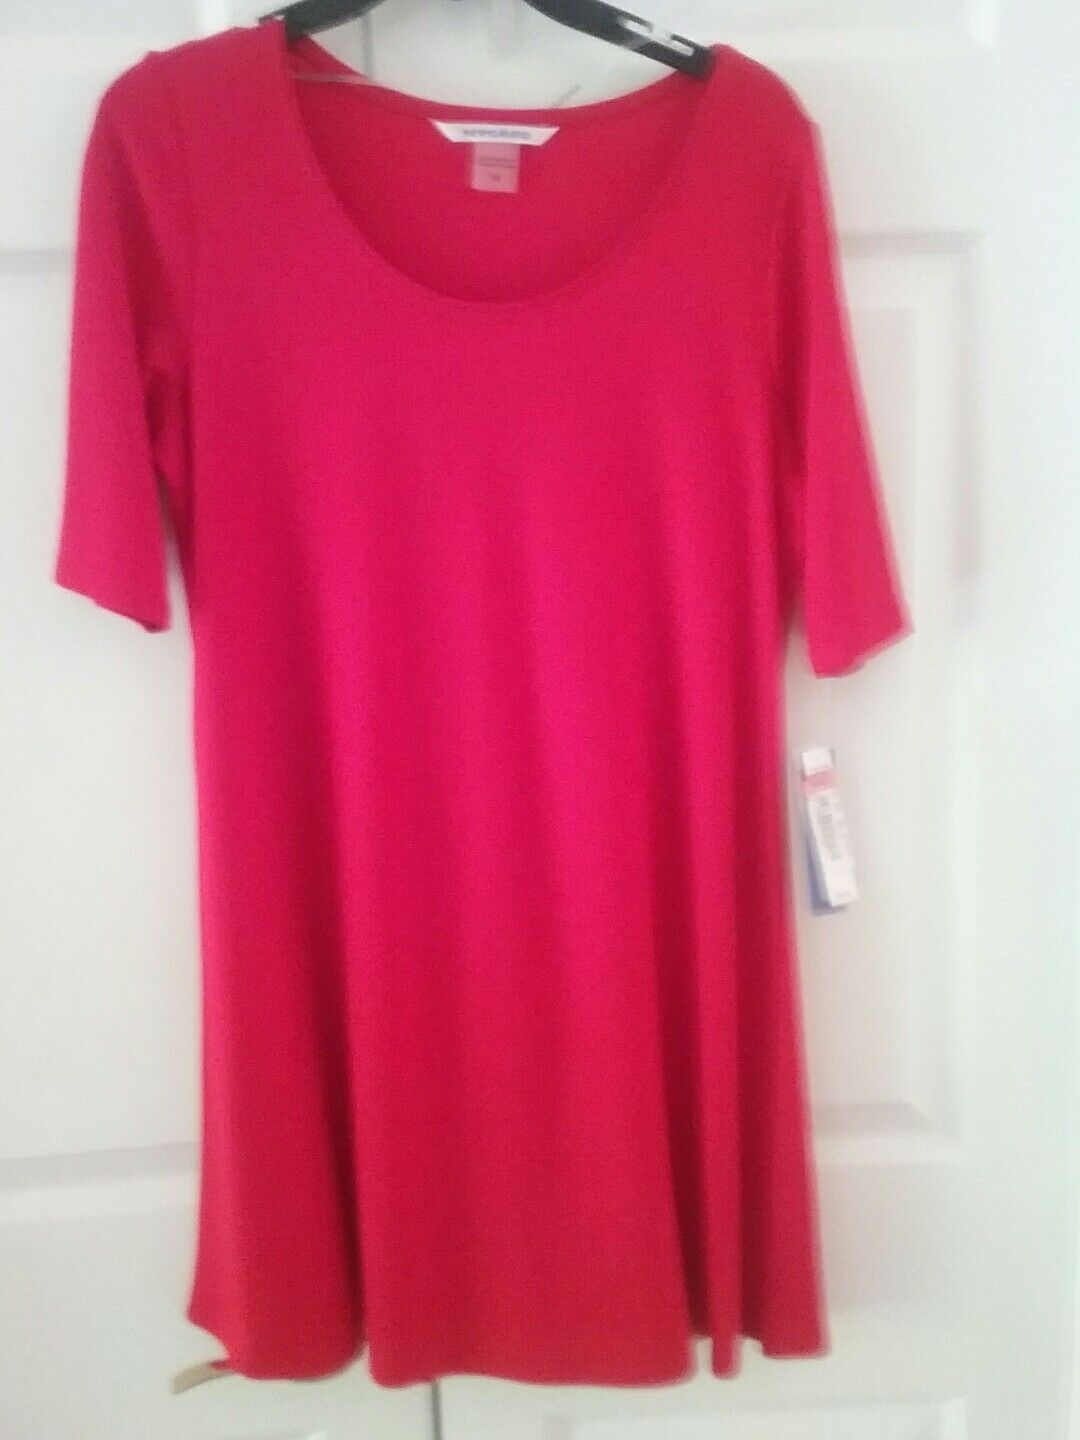 Womens Nygard Brand Short Sleeve Top-- New with Tags-- Retails